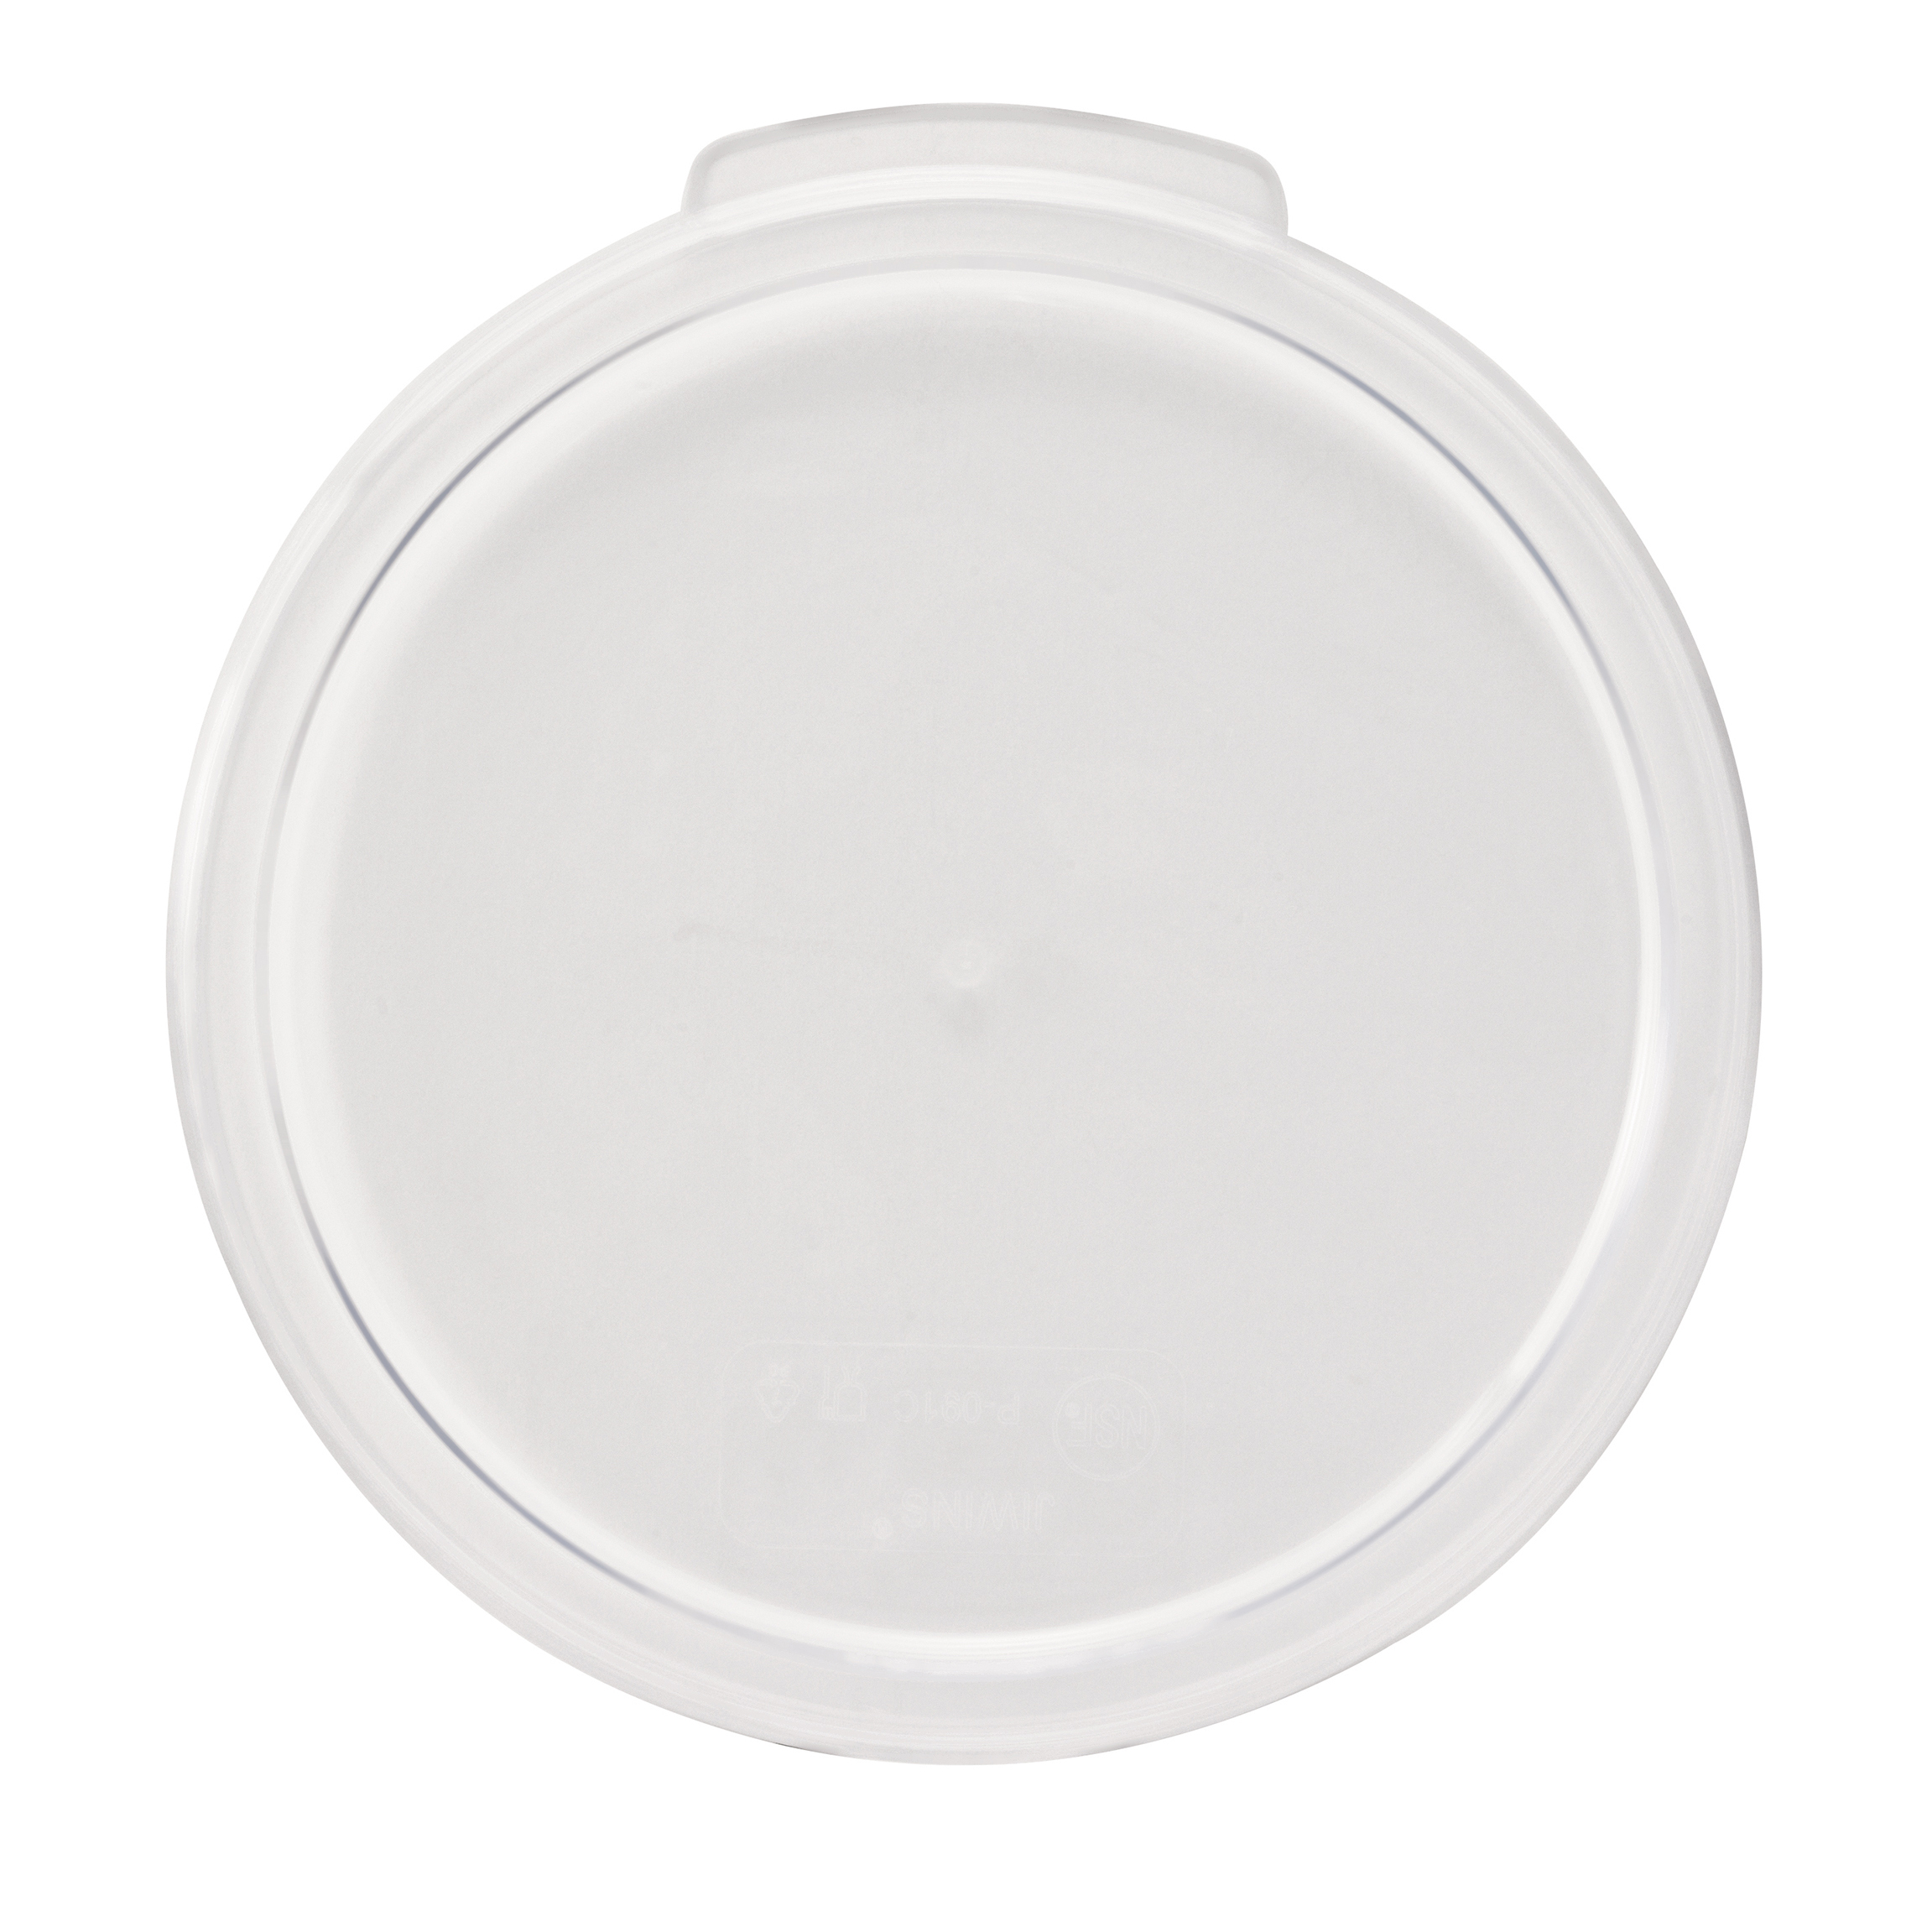 Winco PCRC-1222C food storage container cover